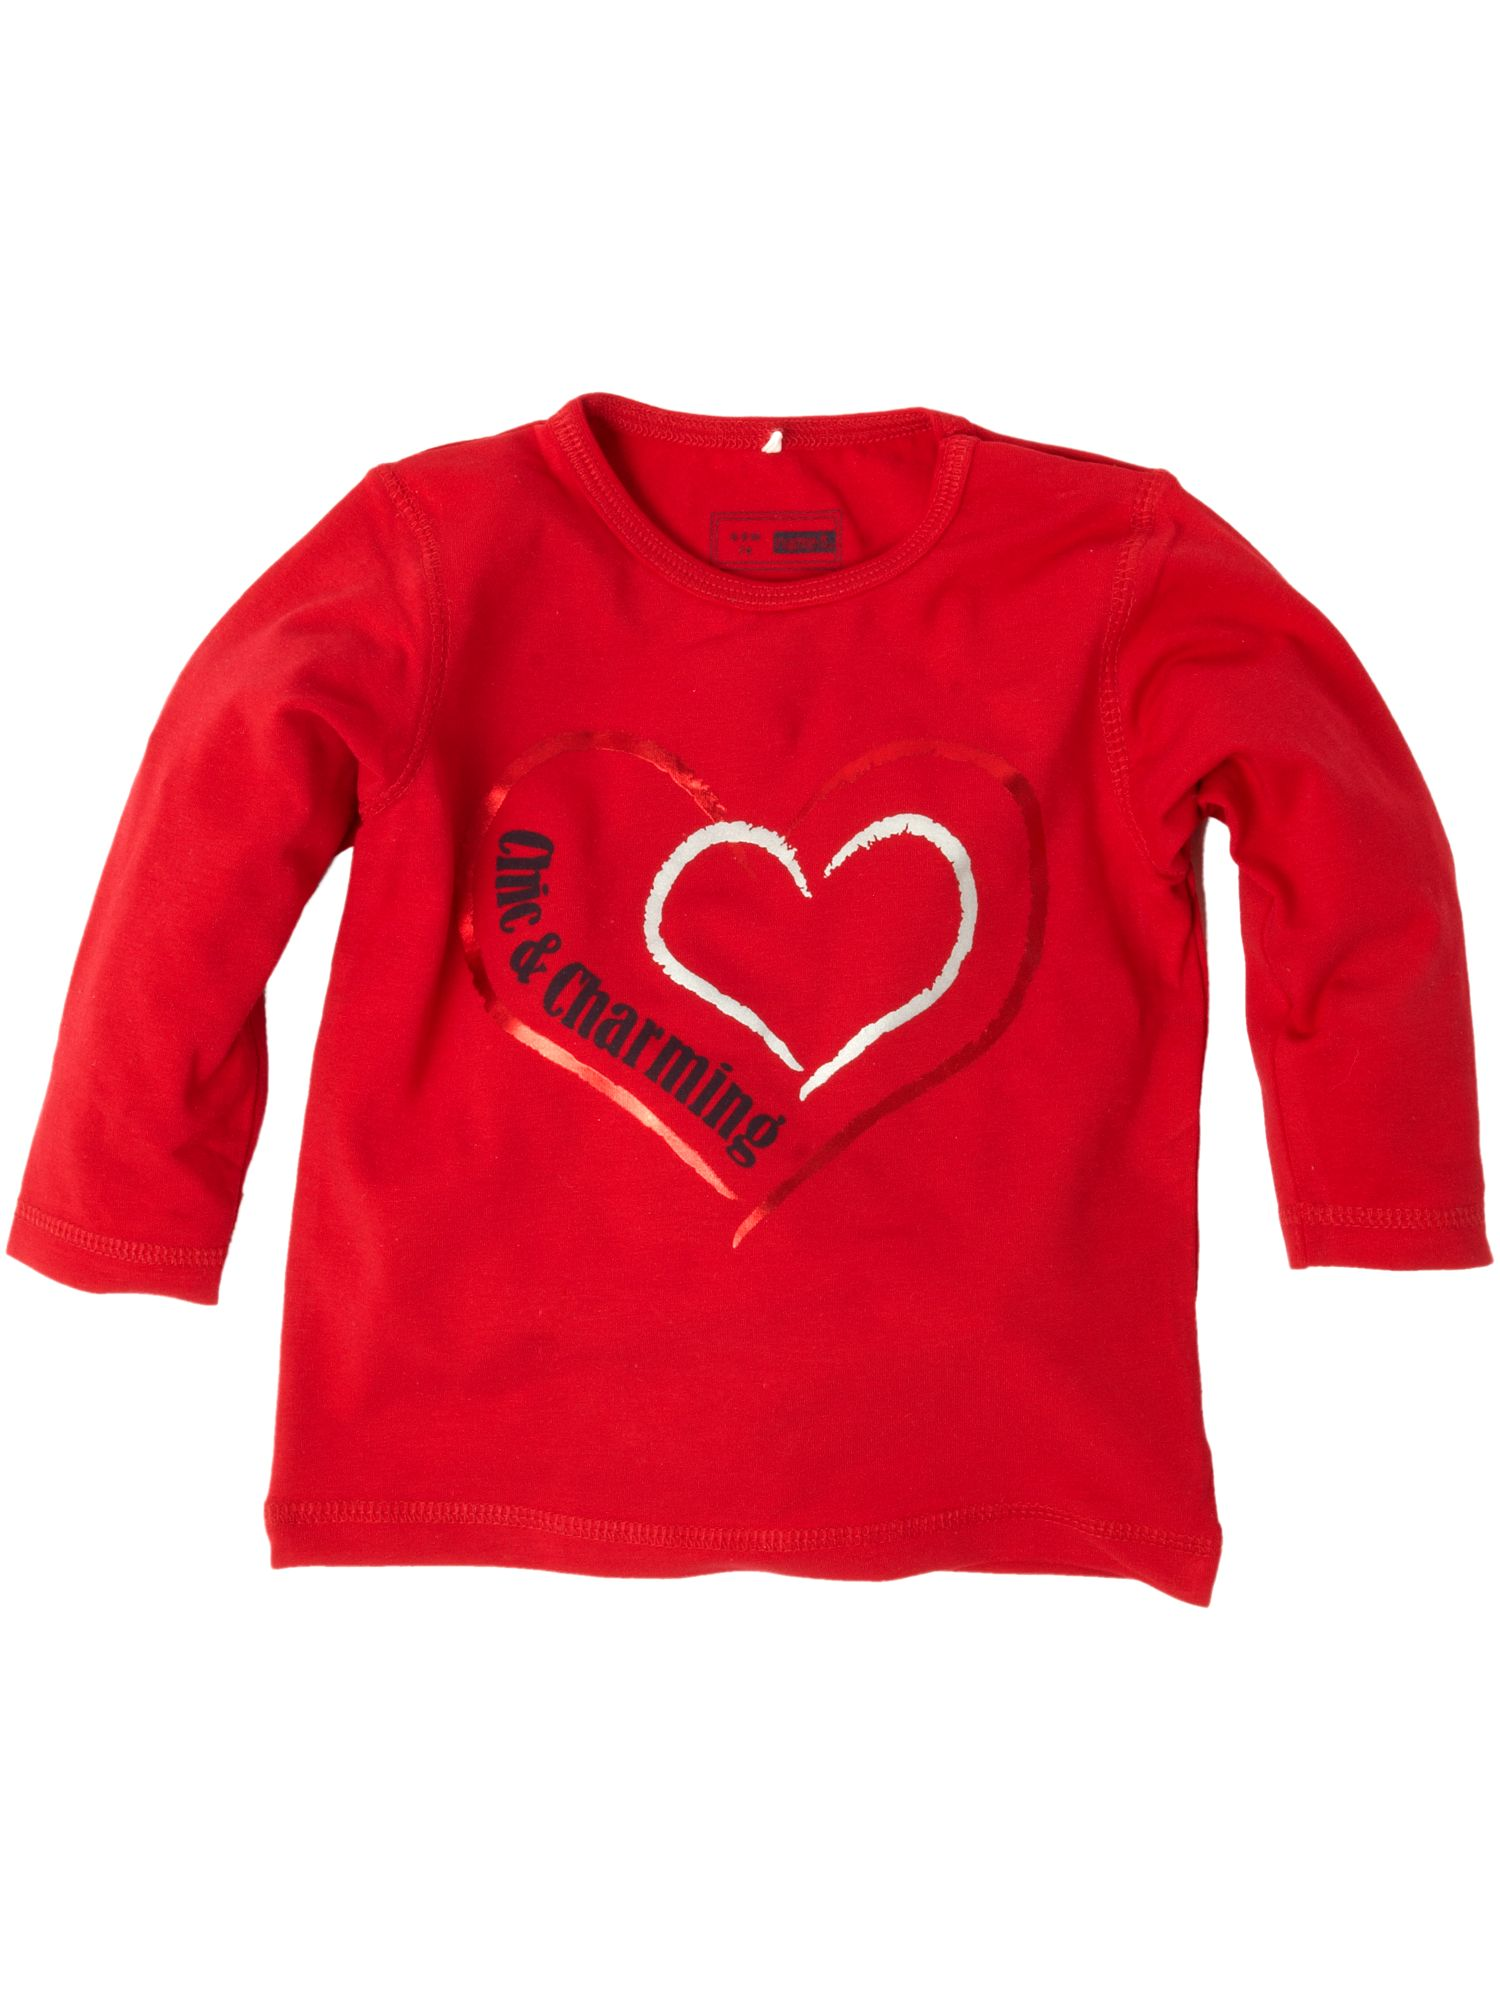 name it Long sleeved heart print T-shirt - Red `18 mths product image